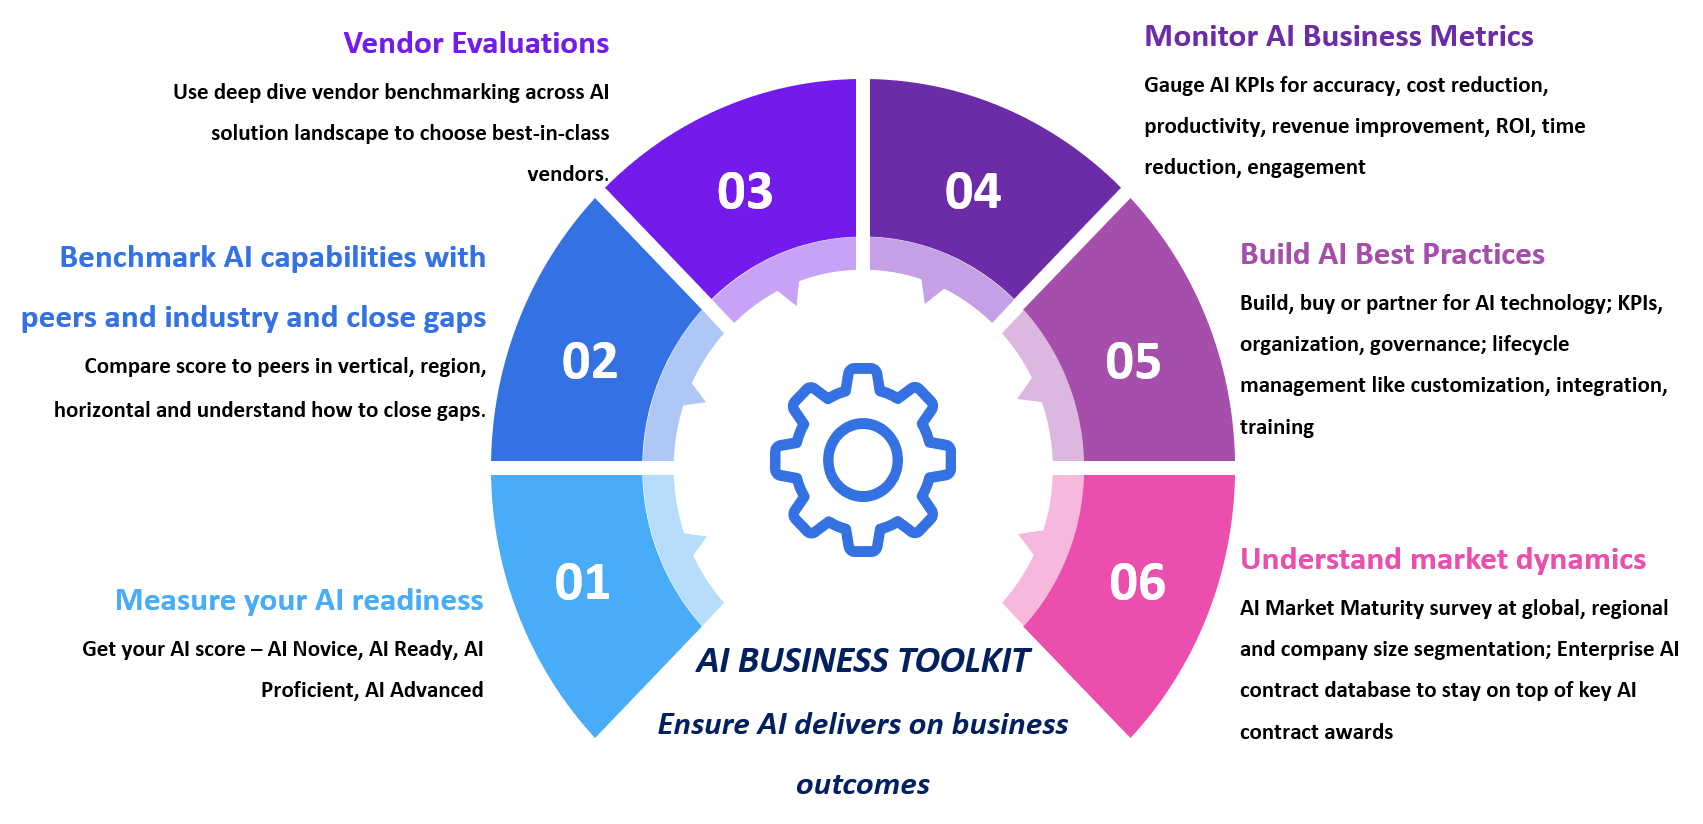 AI Business Toolkit from Omdia